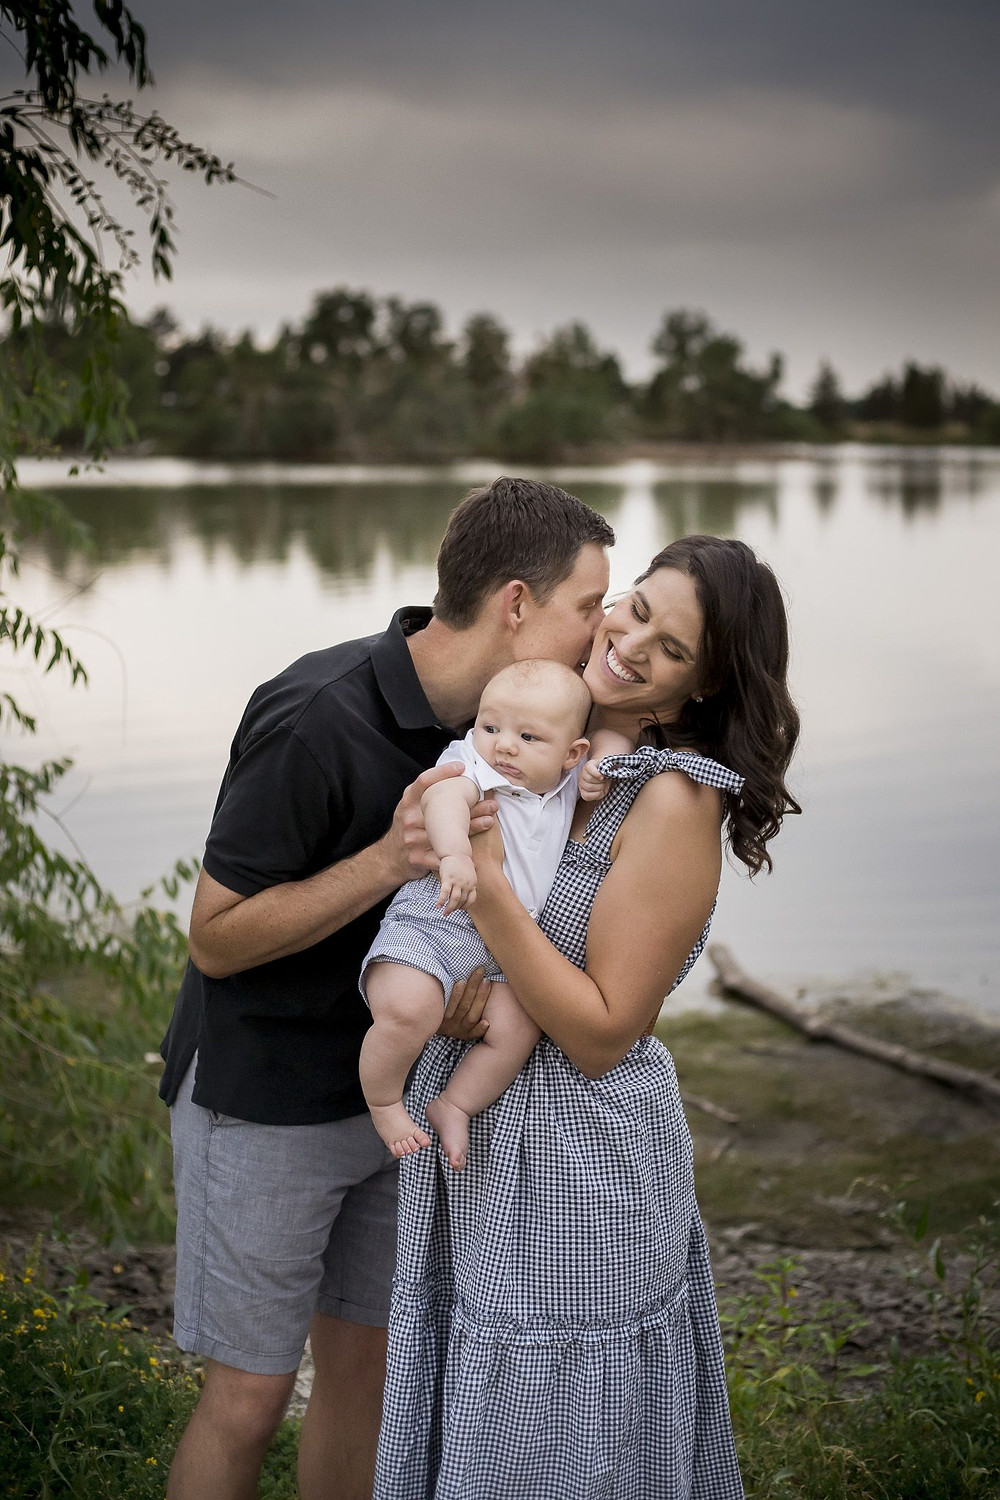 Husband and wife with baby under cloudy sky